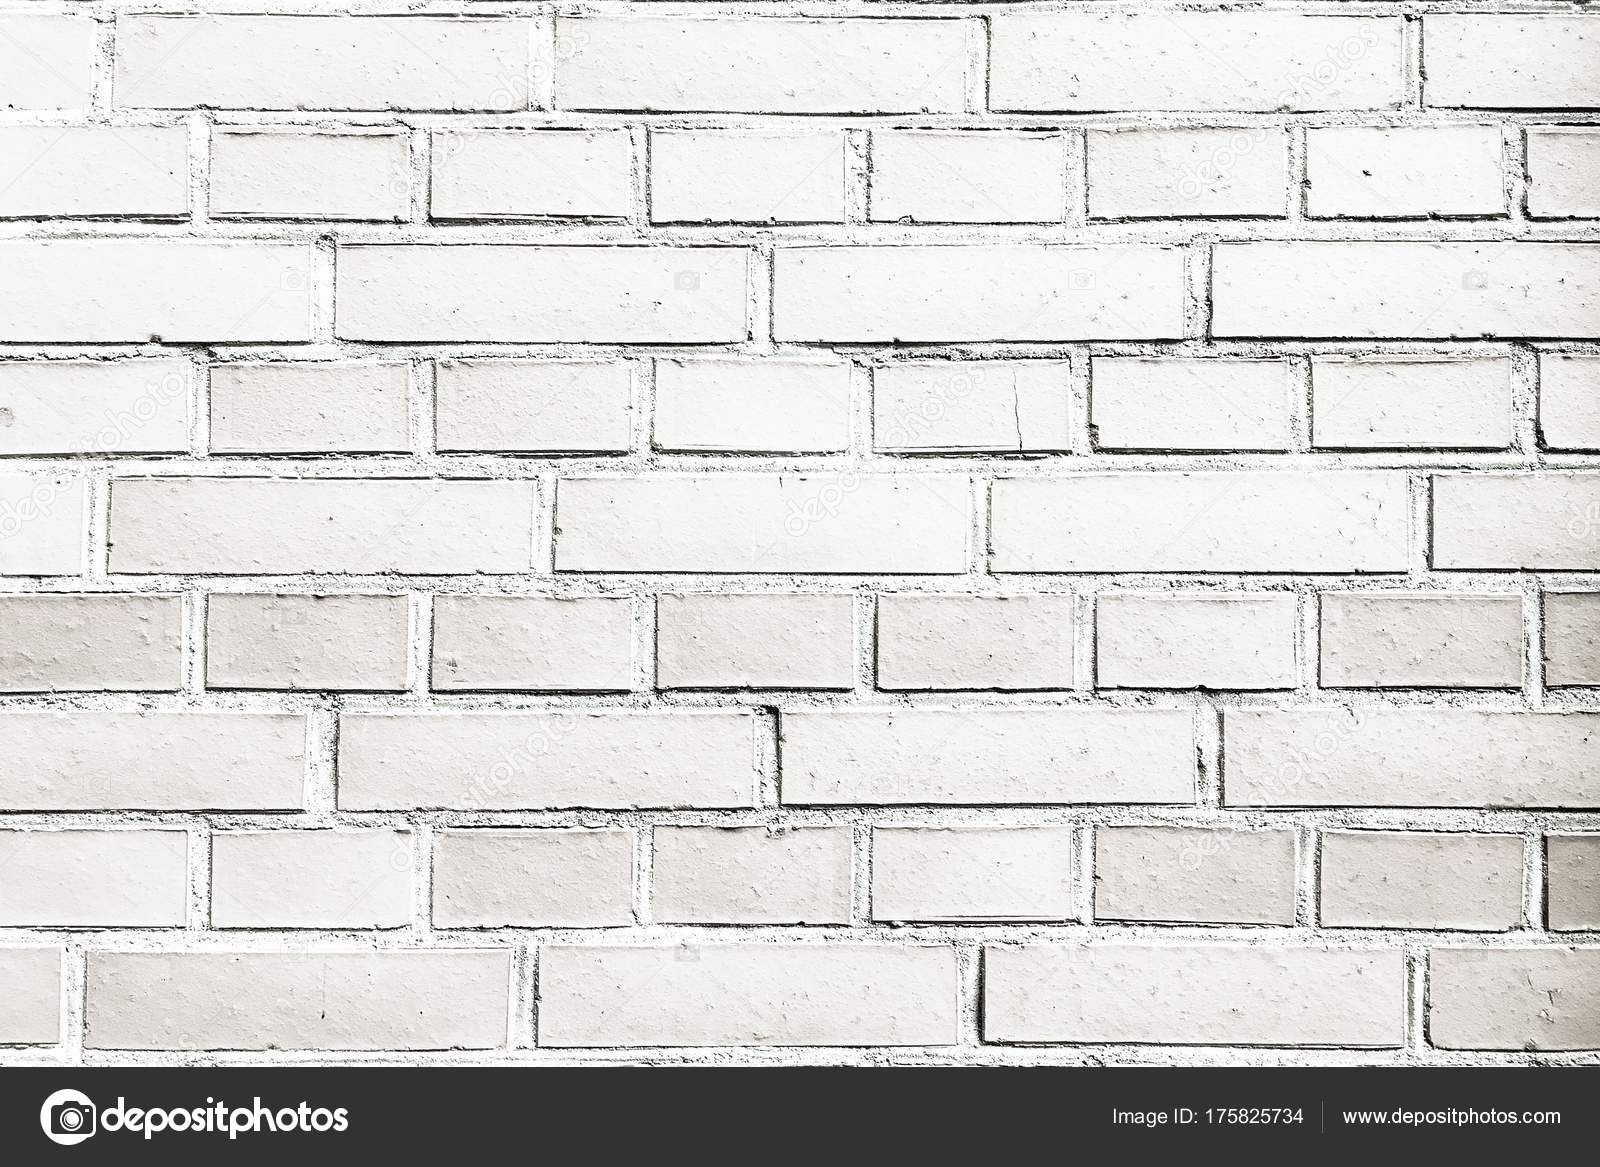 grungy painted brick wall texture as background cracked concrete vintage brick wall background old - Painted Brick